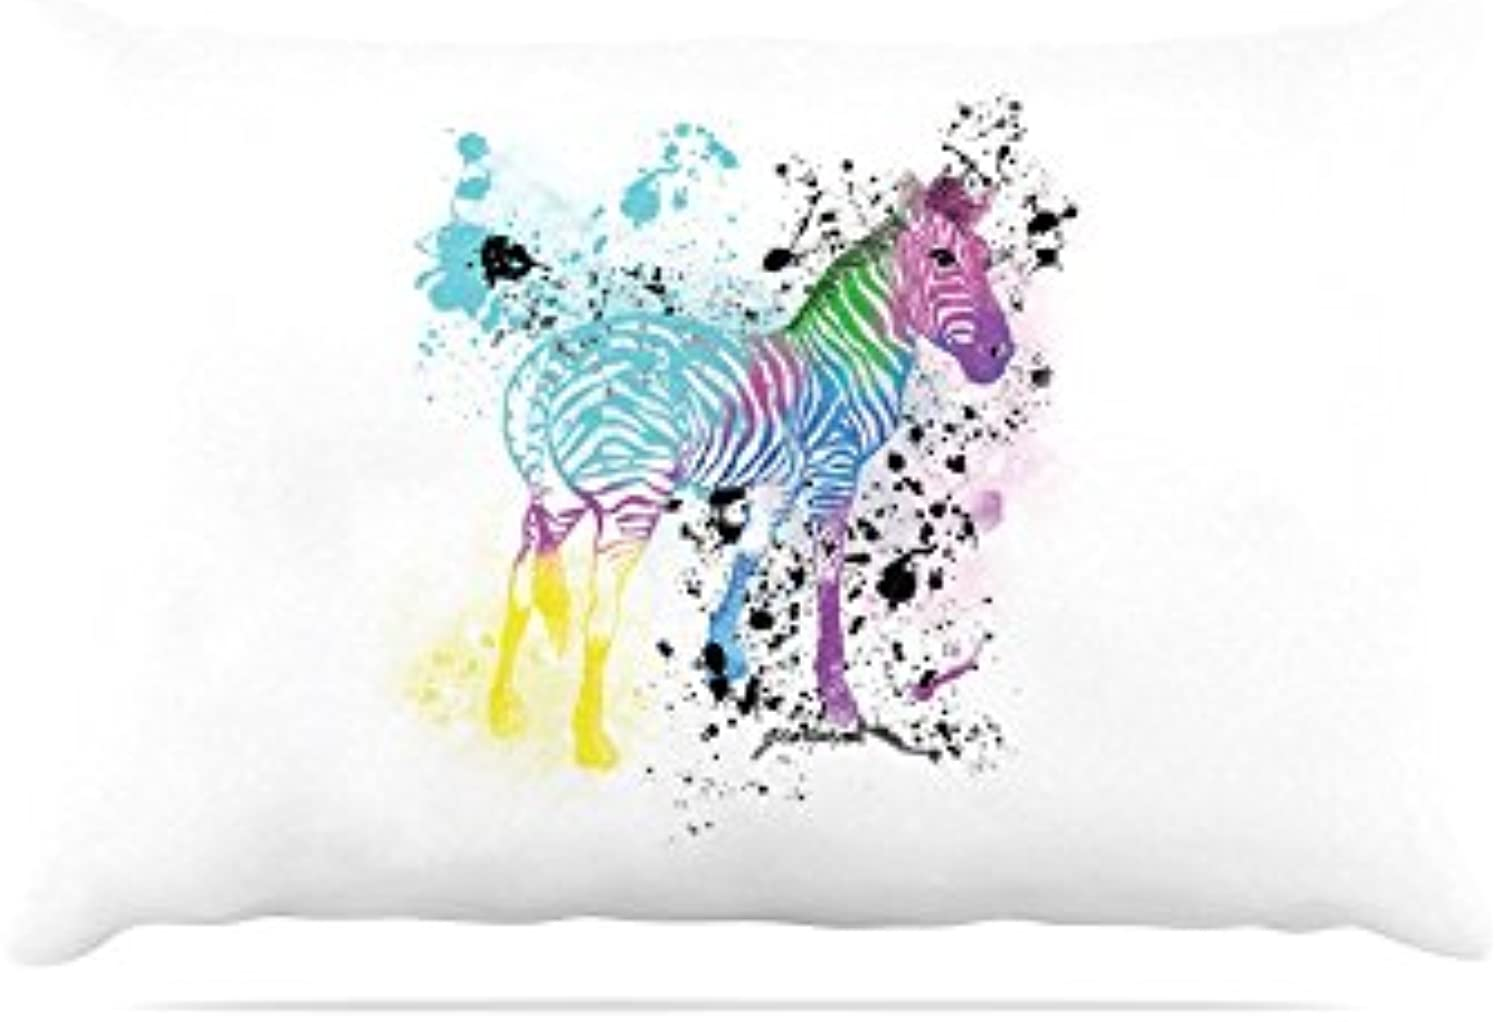 Kess InHouse Geordanna CorderoFields My Panda Sketch  Black White Fleece Dog Bed, 30 by 40